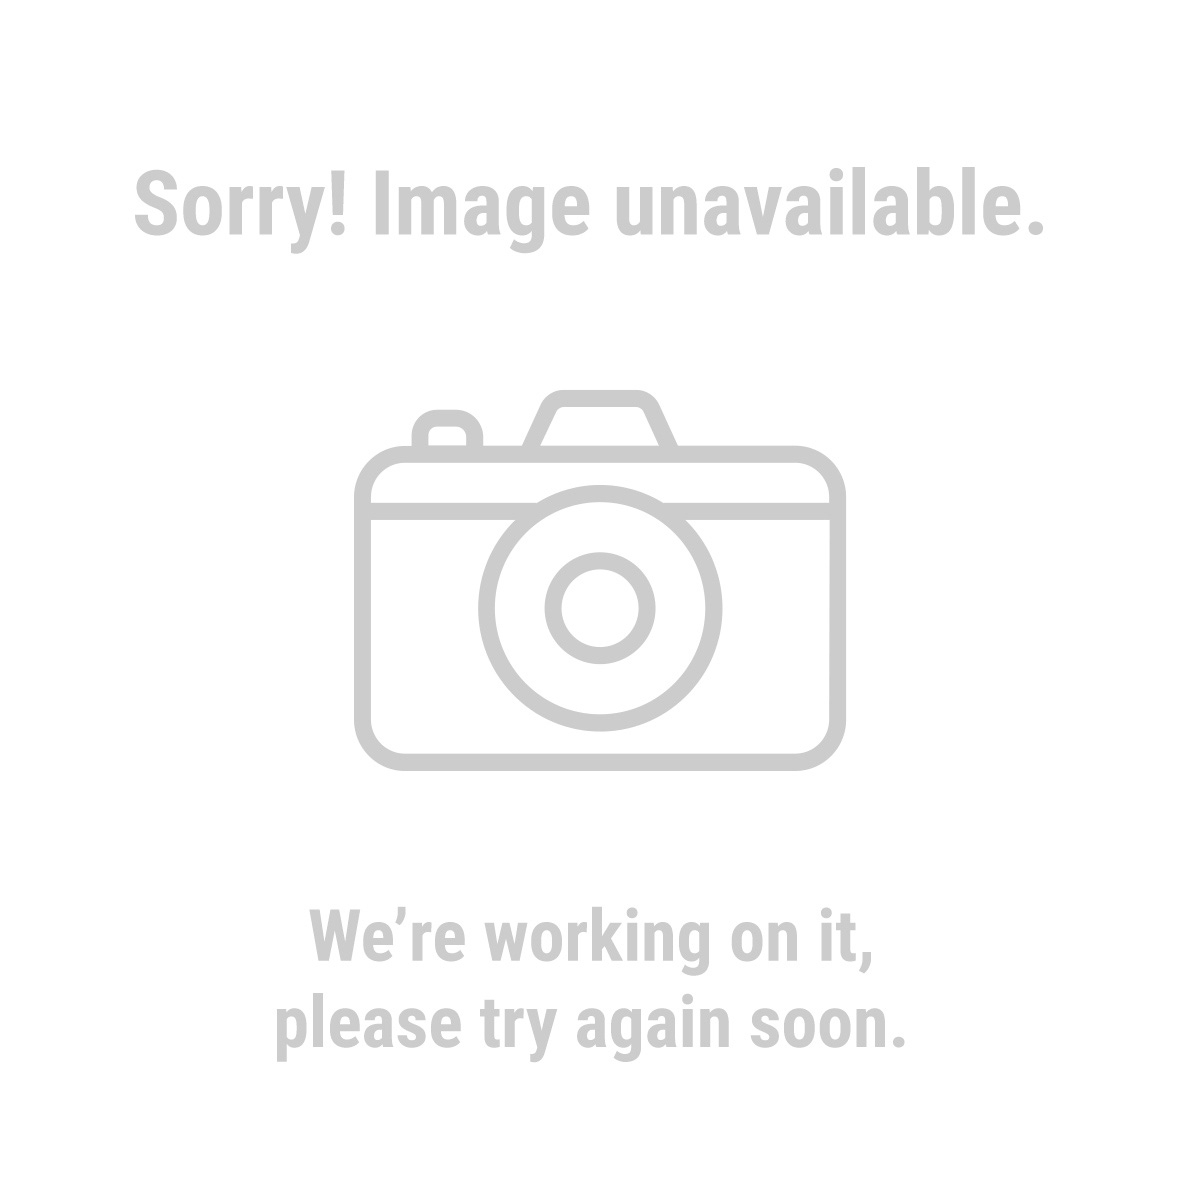 Central Machinery 41524 3-1/2'' x 1-1/4''  Medium Duty Swivel Caster